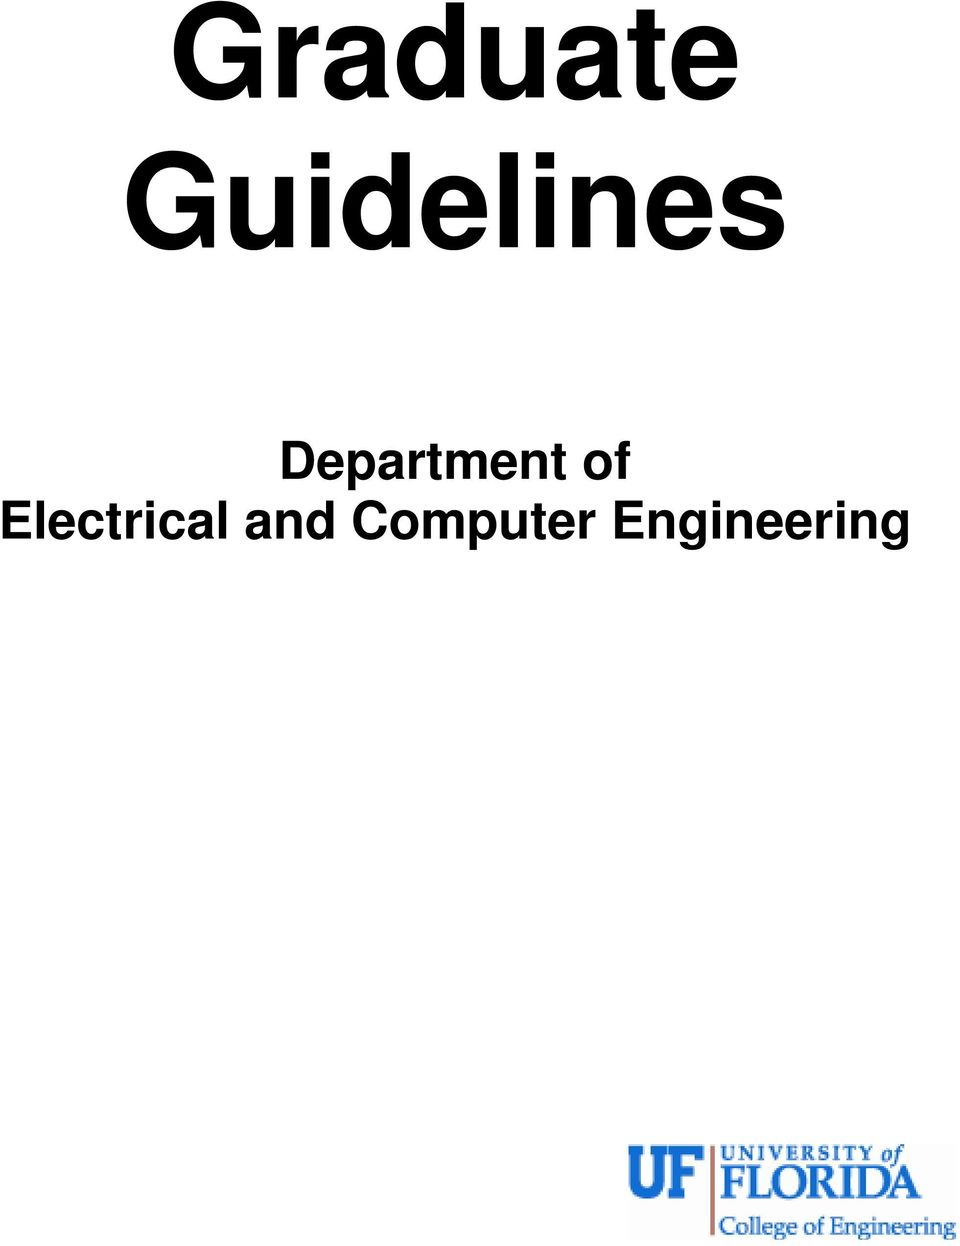 Graduate Guidelines. Department of Electrical and Computer